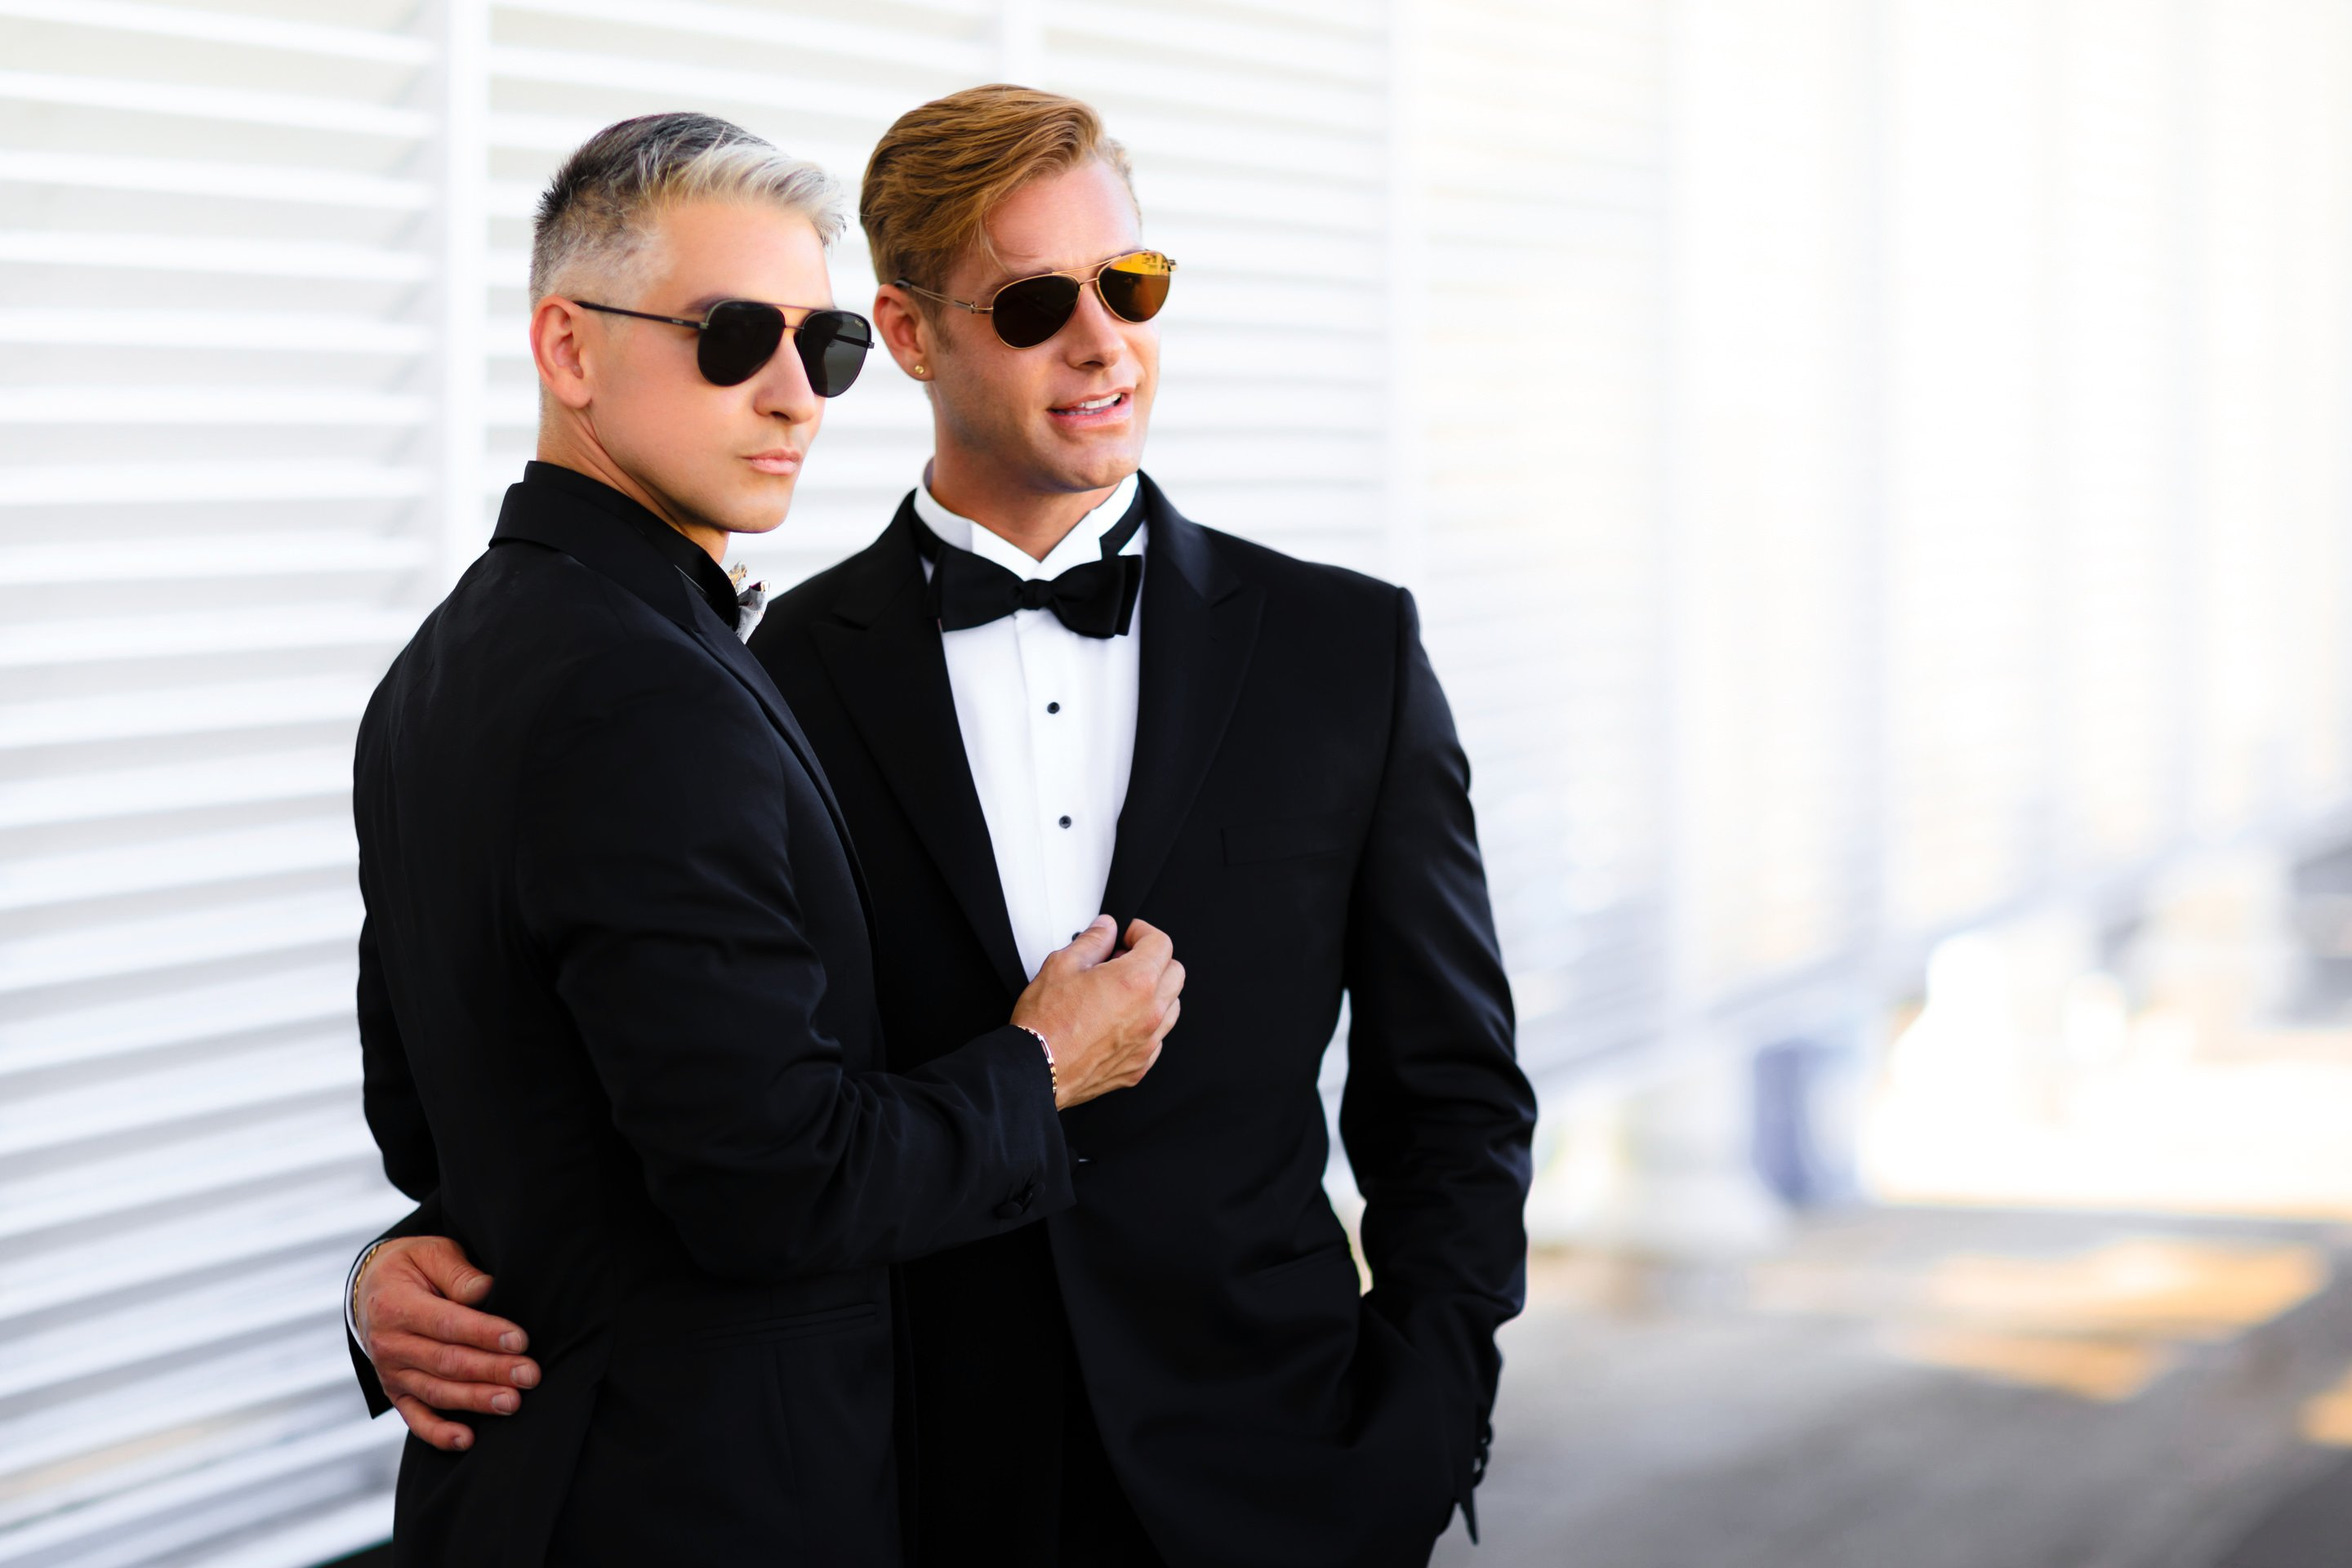 los-angeles-rooftop-same-sex-wedding-w-hollywood-bespoke-bridal-photography-arpit-mehta-visual-artist-13